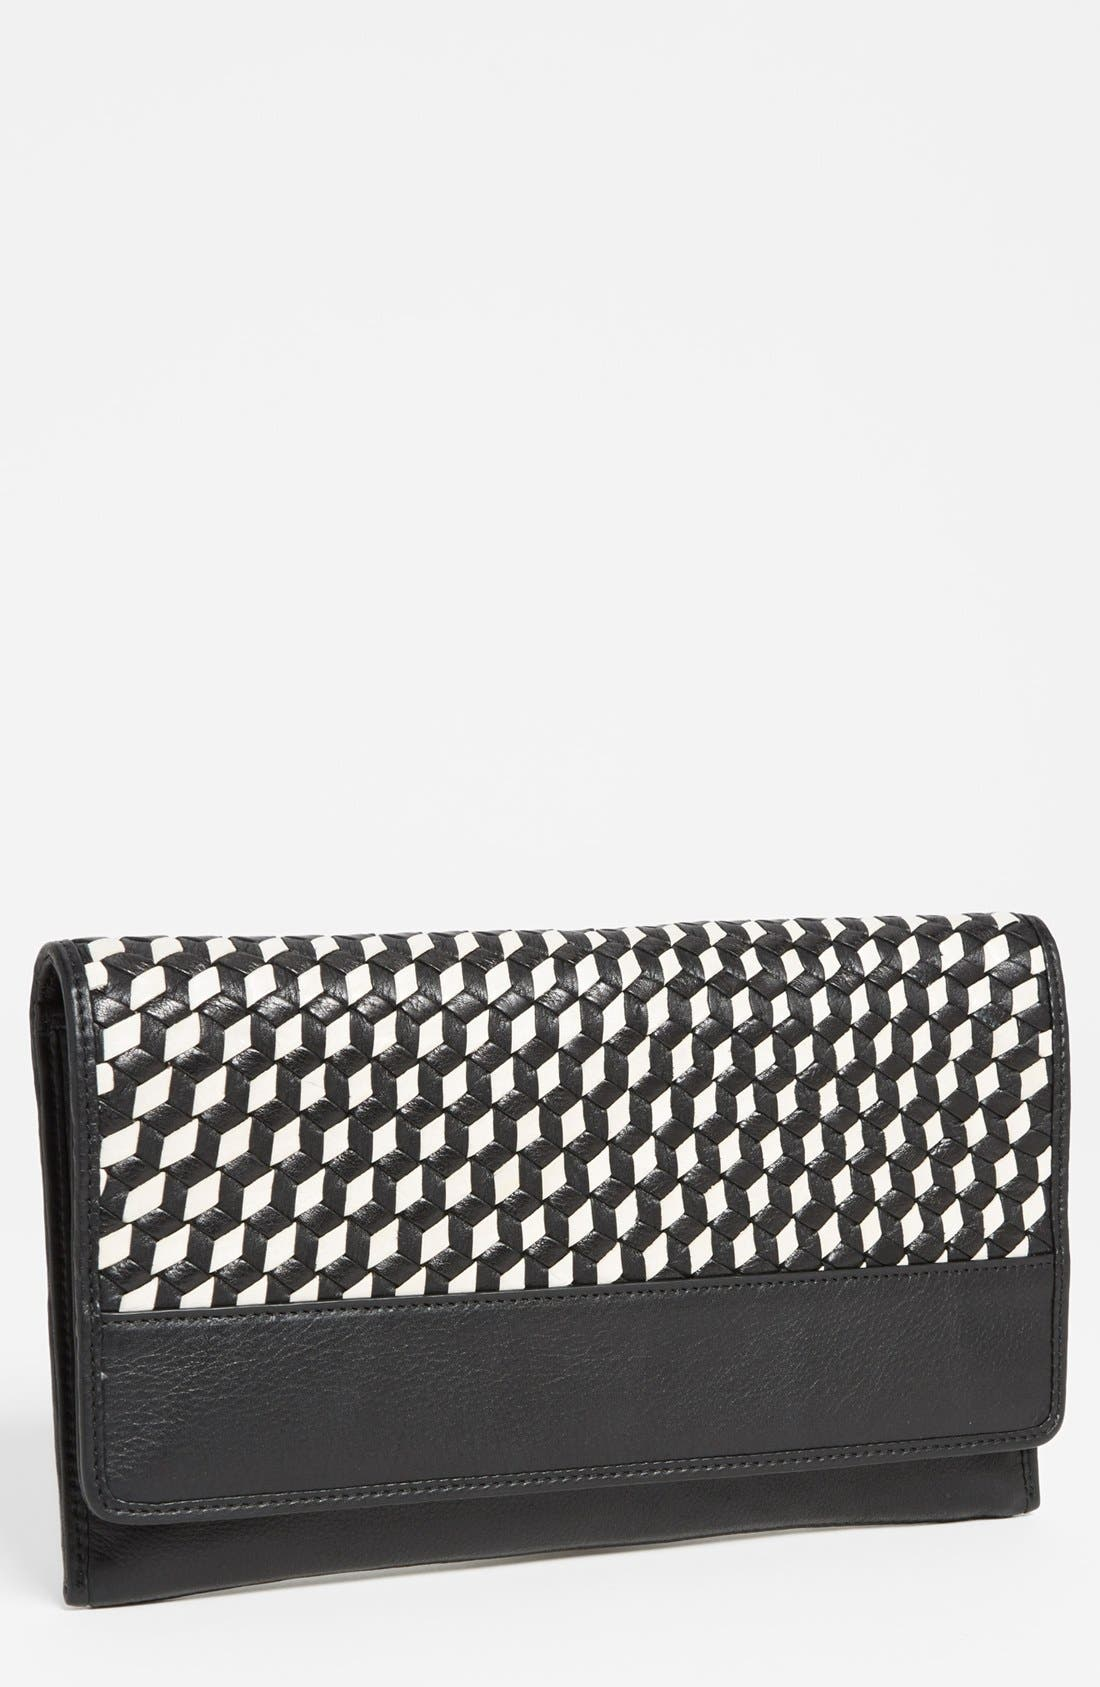 Main Image - Cole Haan 'Parker' Envelope Clutch